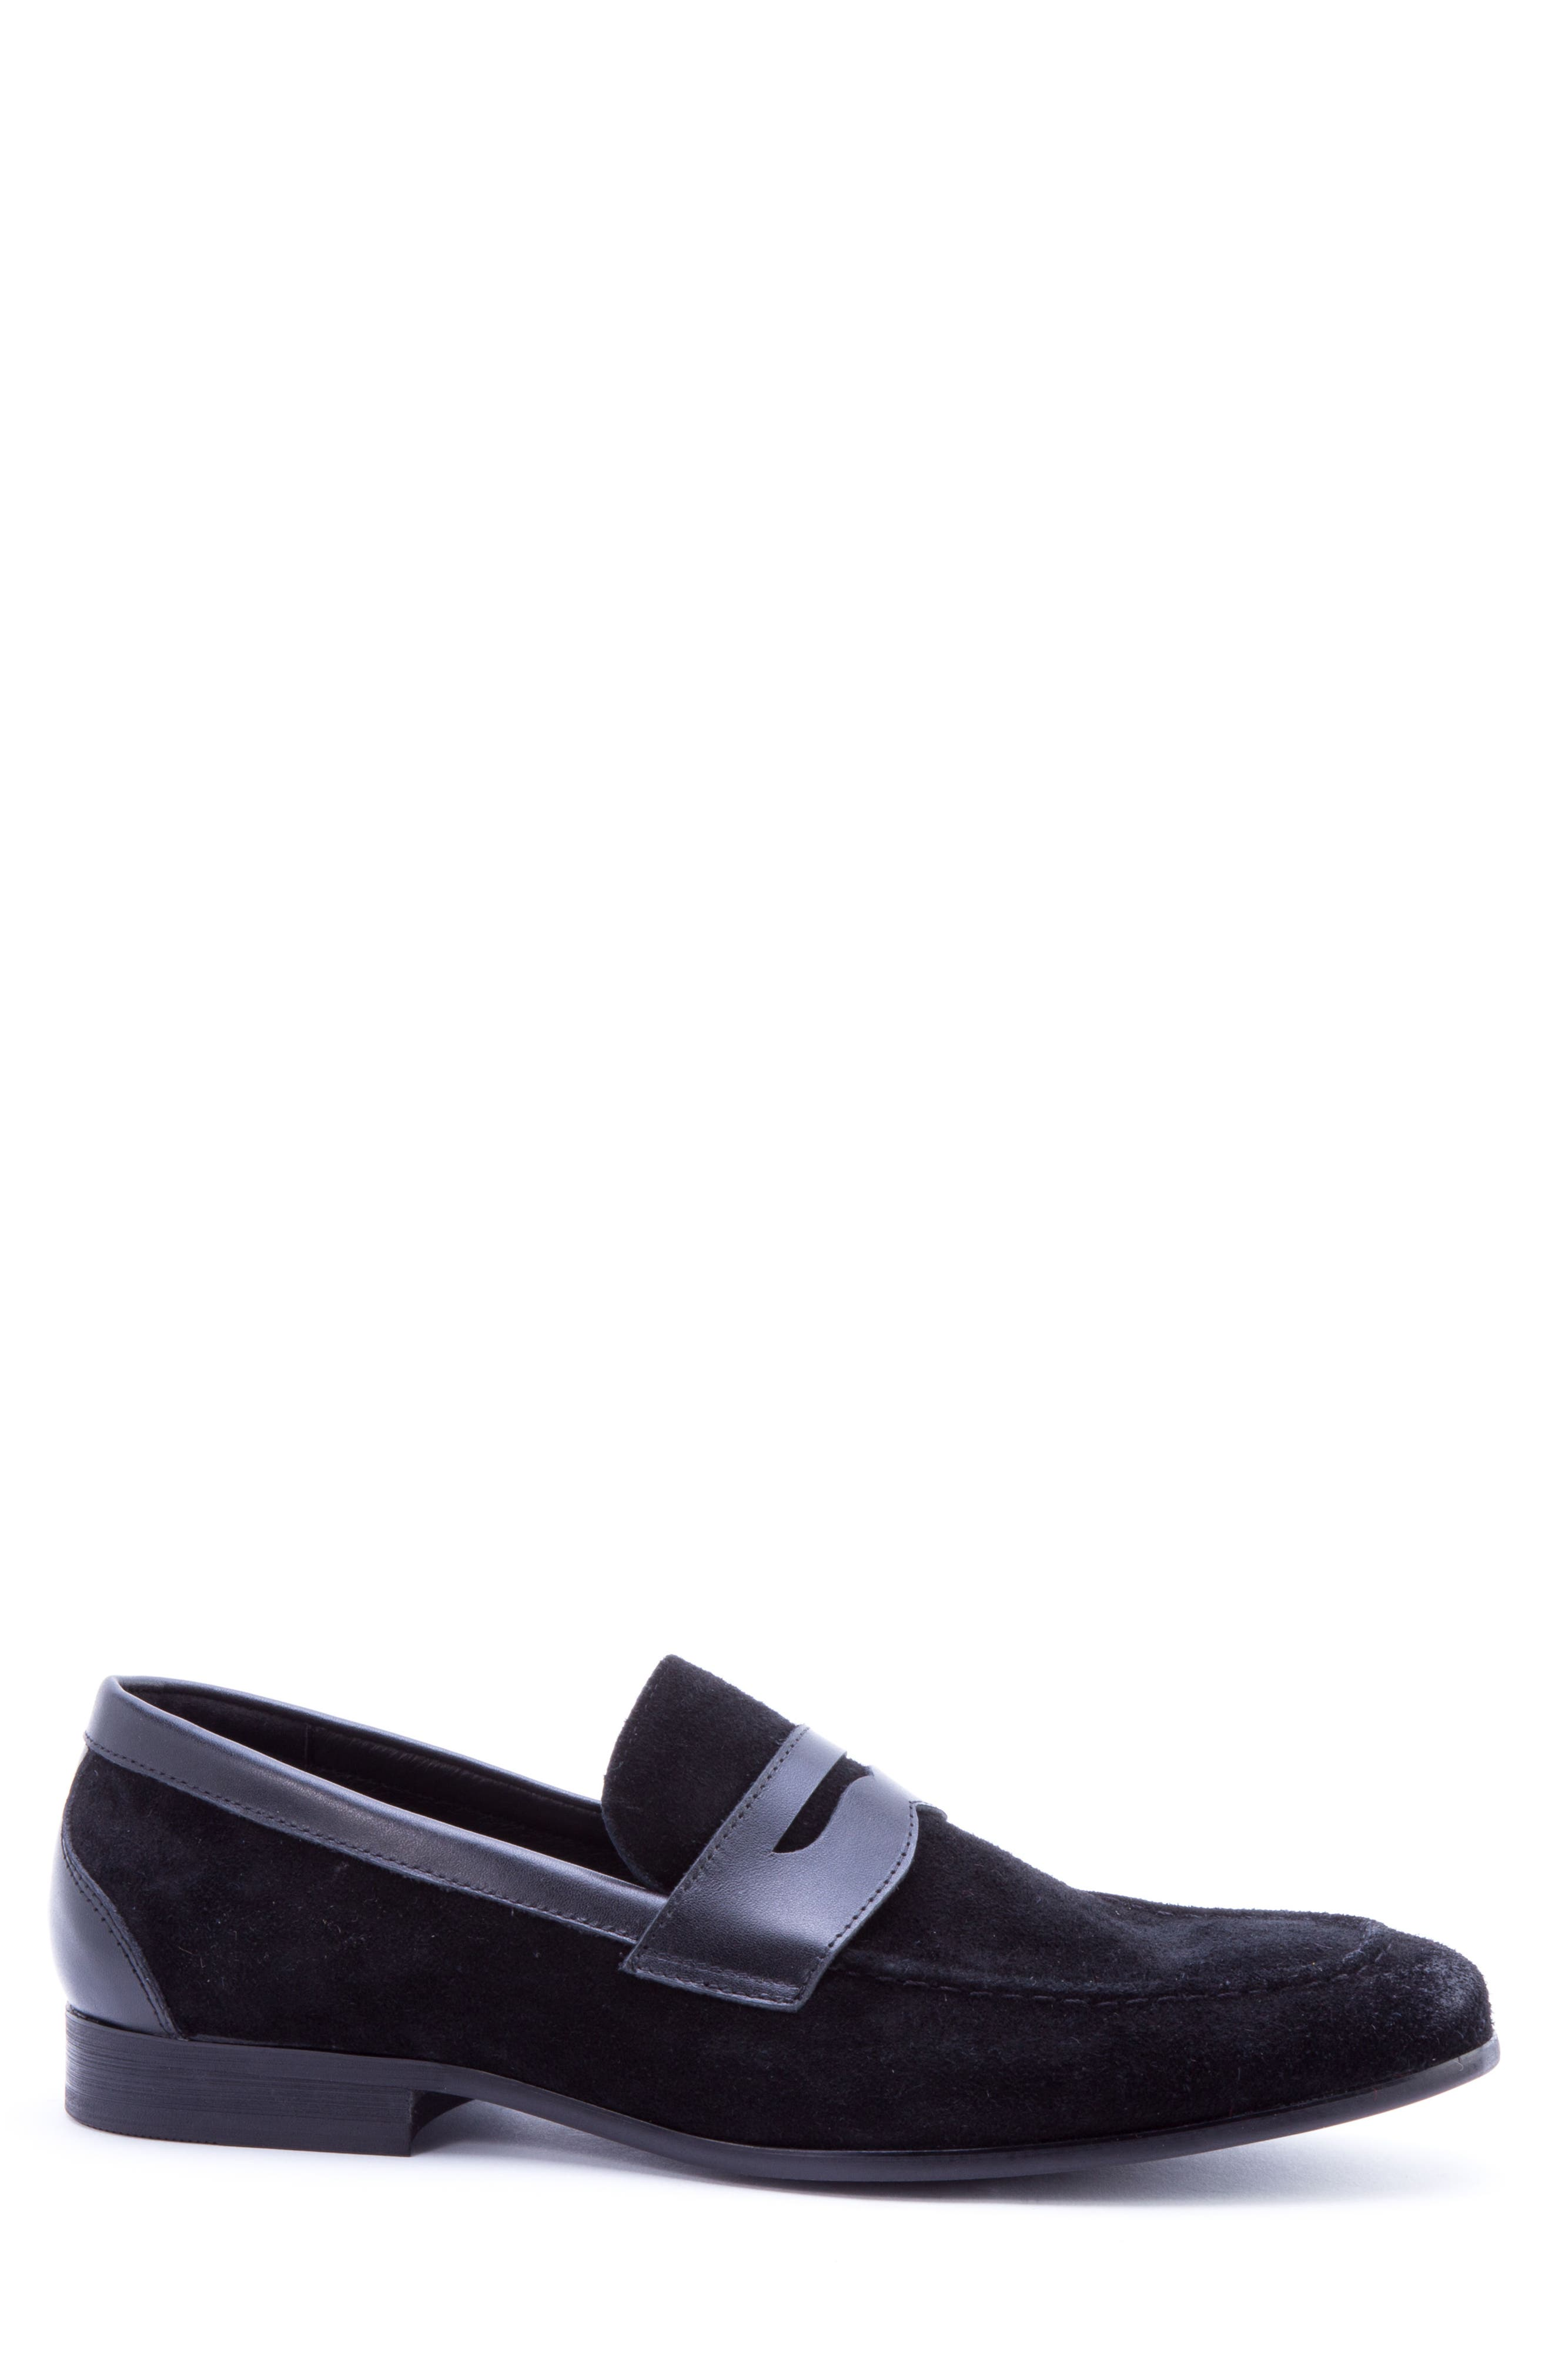 Siena Penny Loafer,                             Alternate thumbnail 3, color,                             Black Suede/ Leather